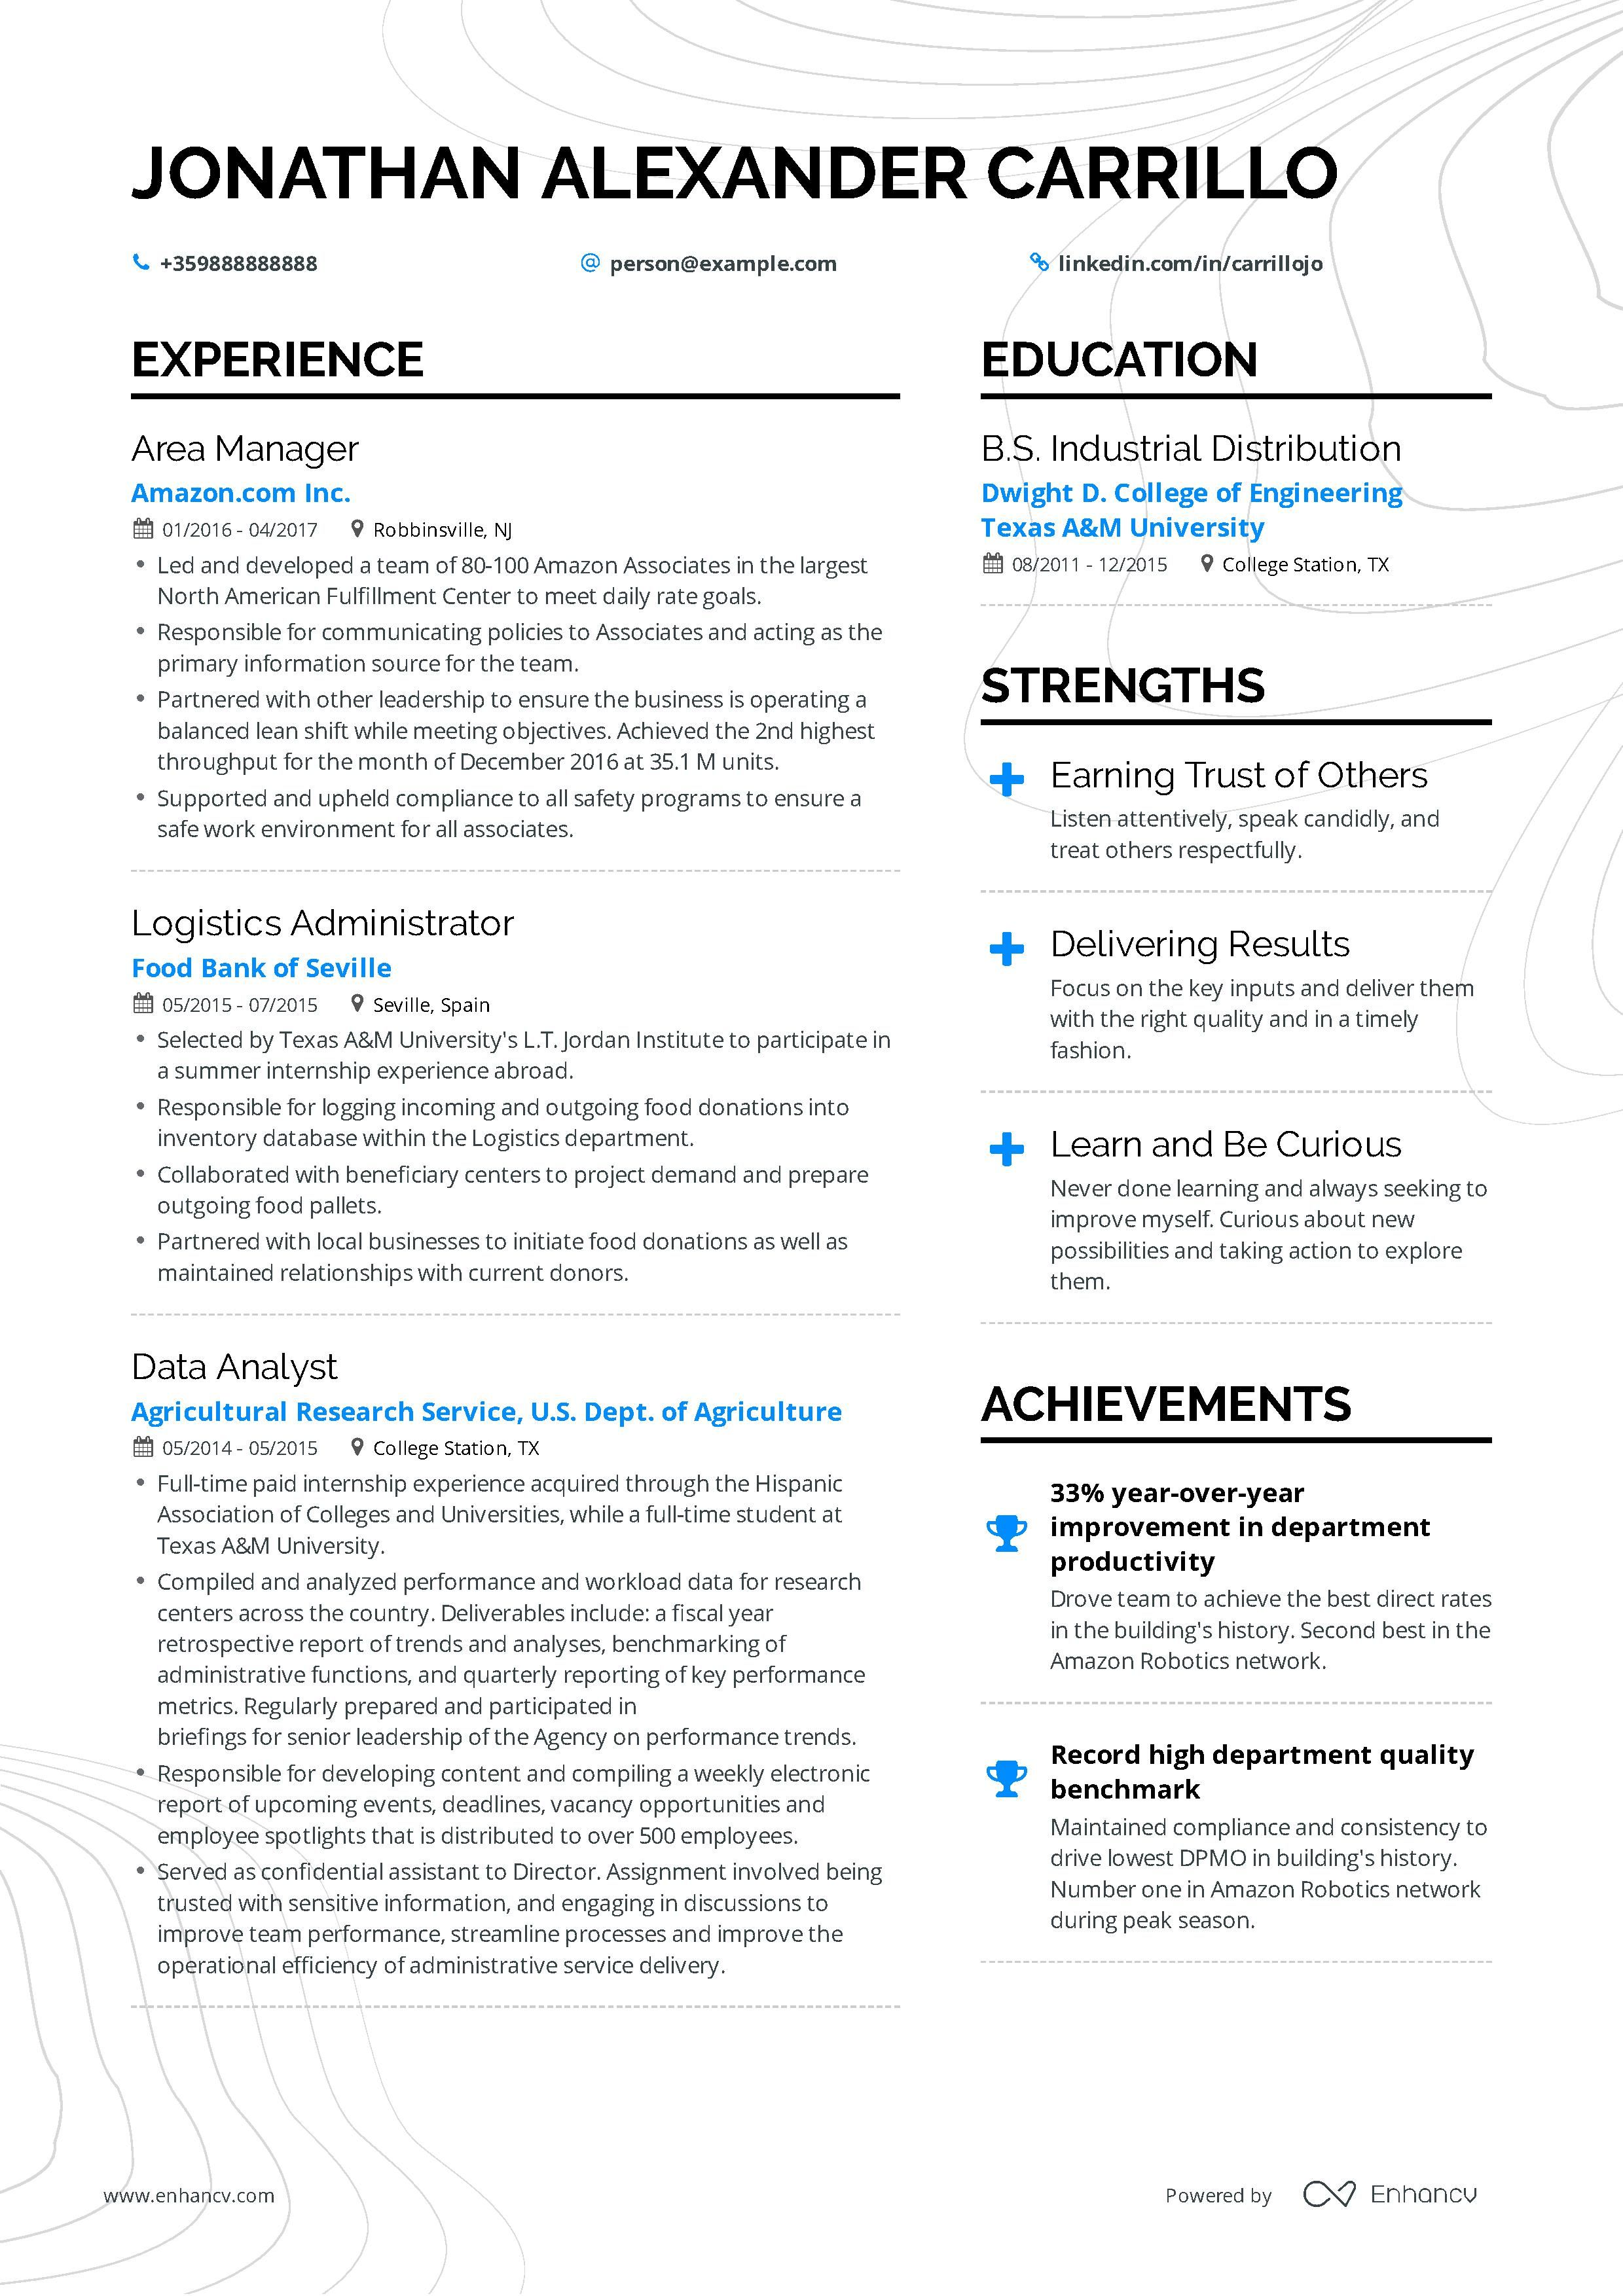 Operations Manager Resume Example And Guide For 2019 Resume Examples Operations Management Job Resume Samples